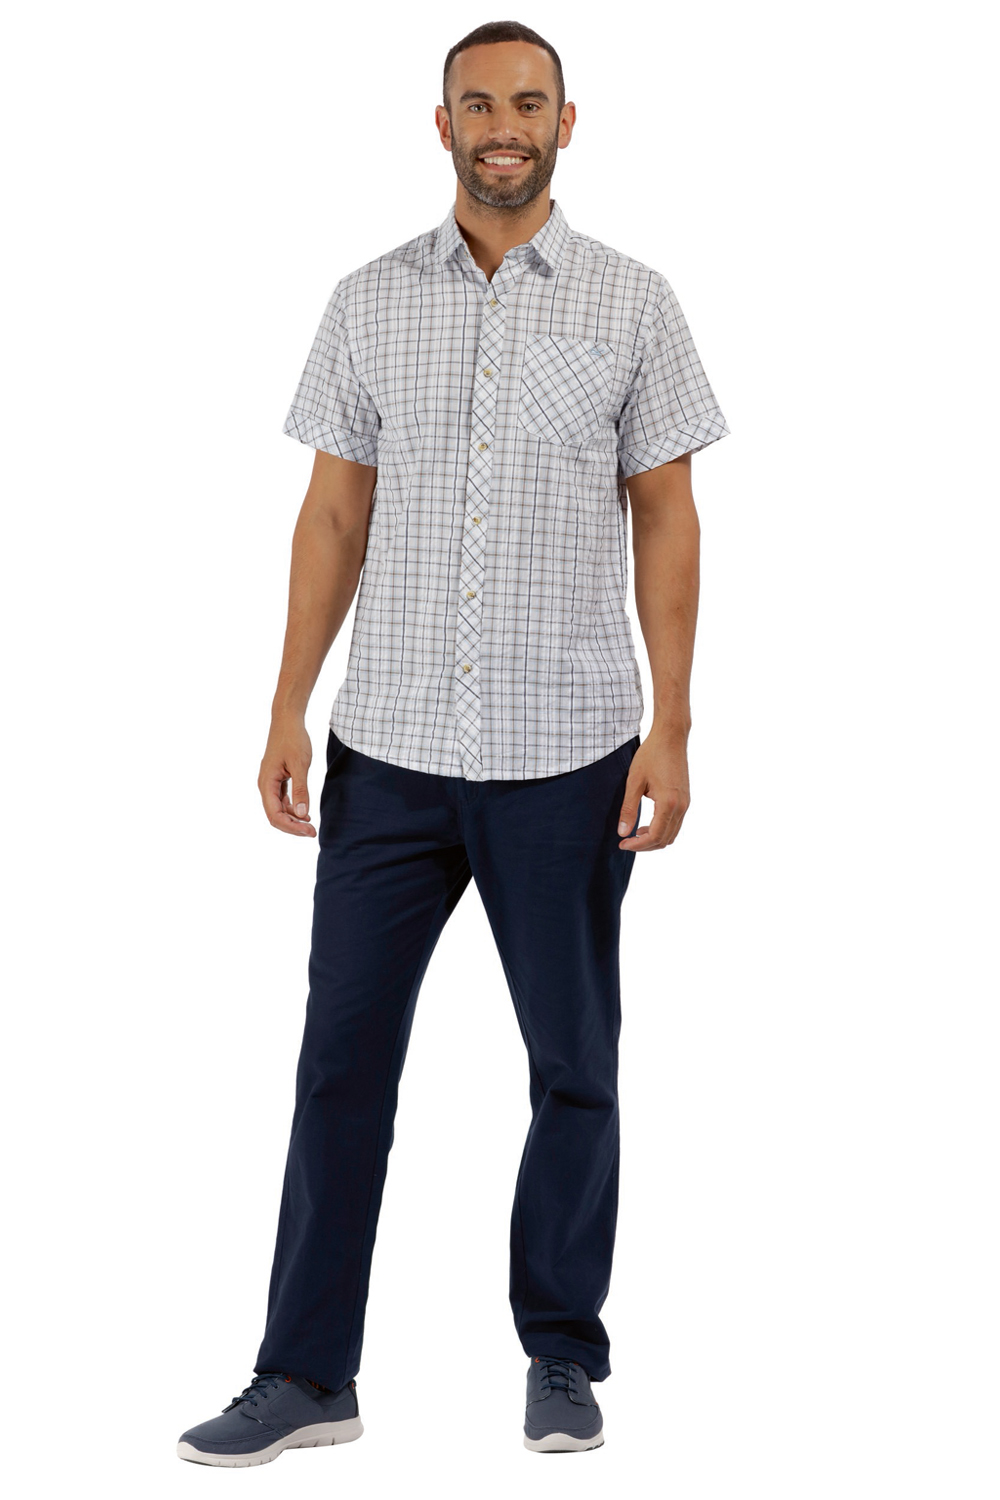 Regatta-Mens-Deakin-II-Coolweave-Cotton-Short-Sleeved-Summer-Check-Shirt-RRP-50 thumbnail 23